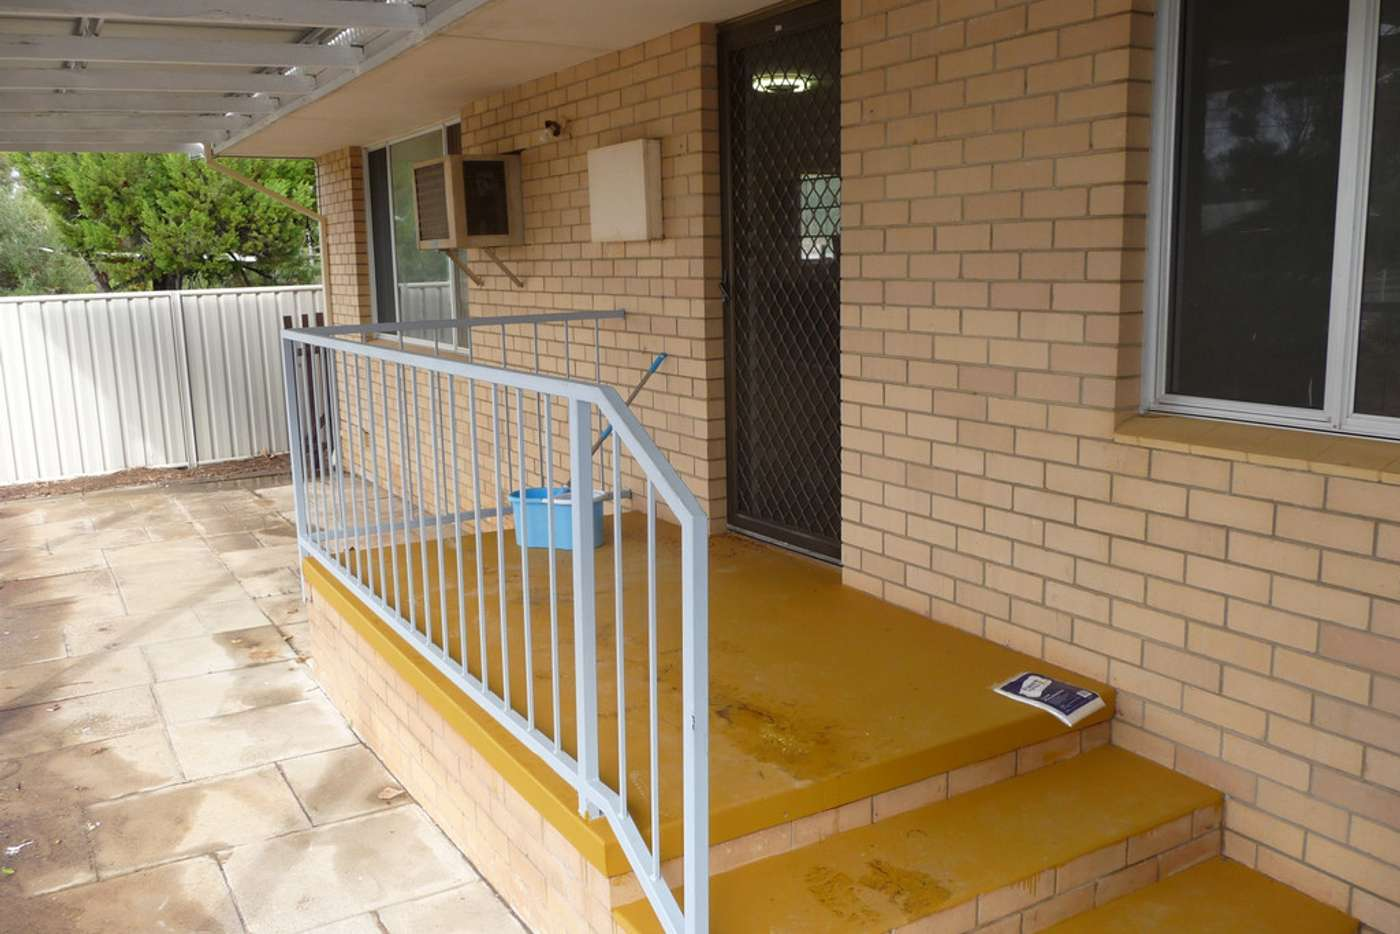 Main view of Homely house listing, 17 MONGER STREET, Beverley WA 6304